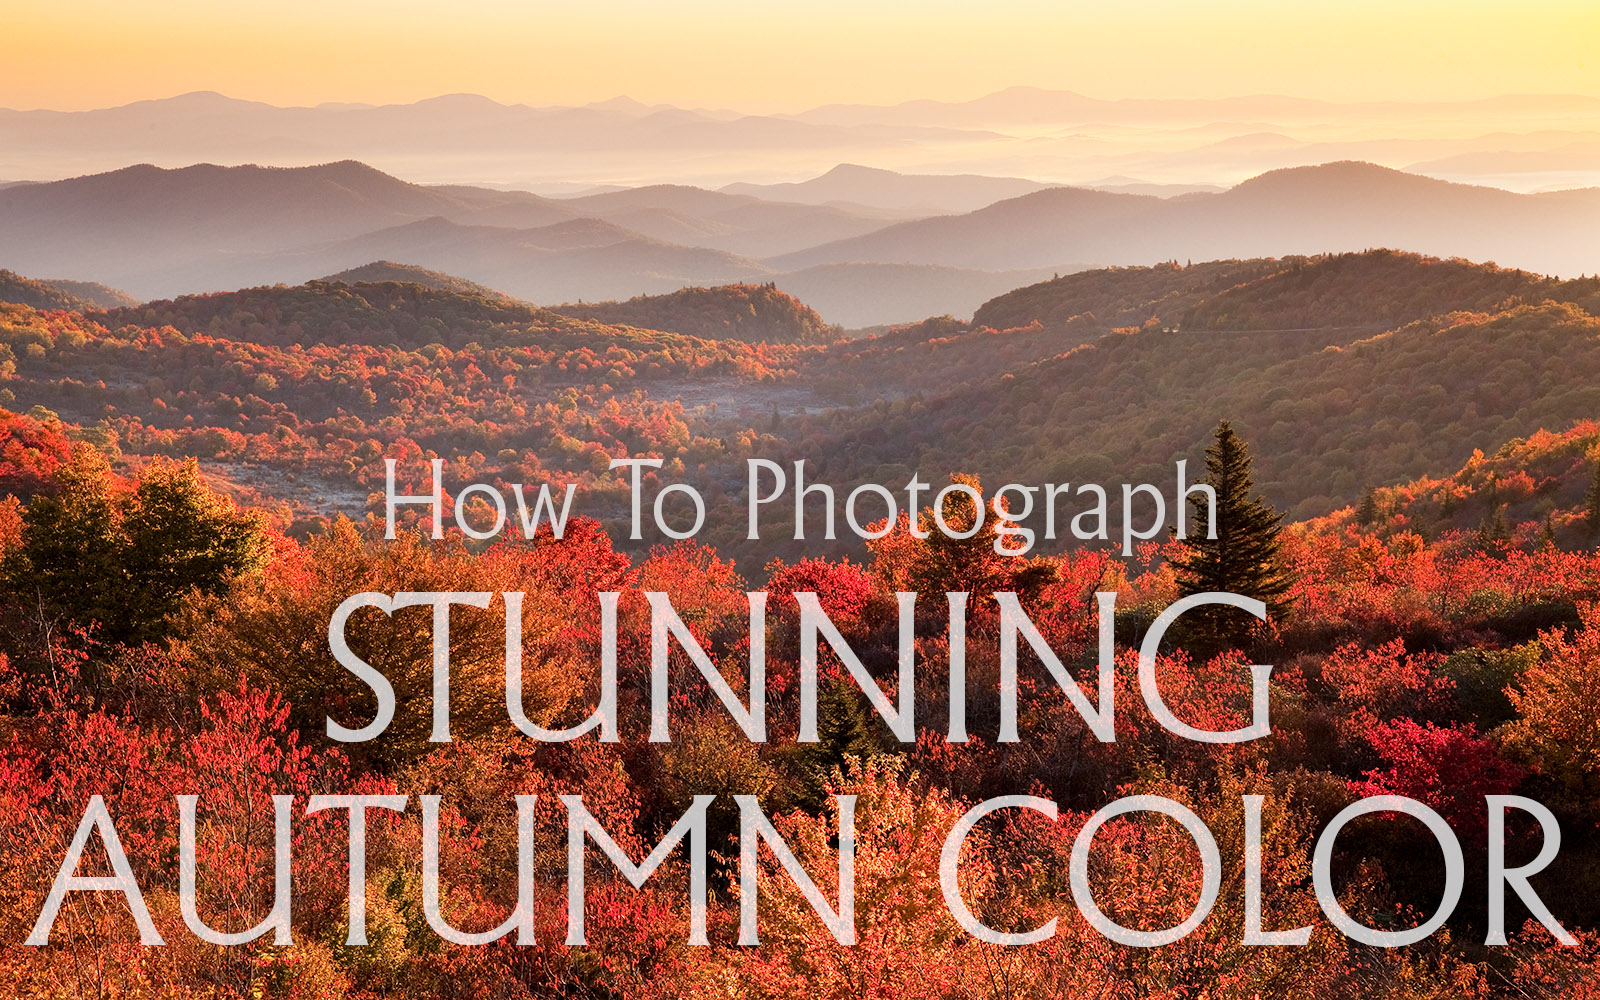 How To Photograph Stunning Autumn Color